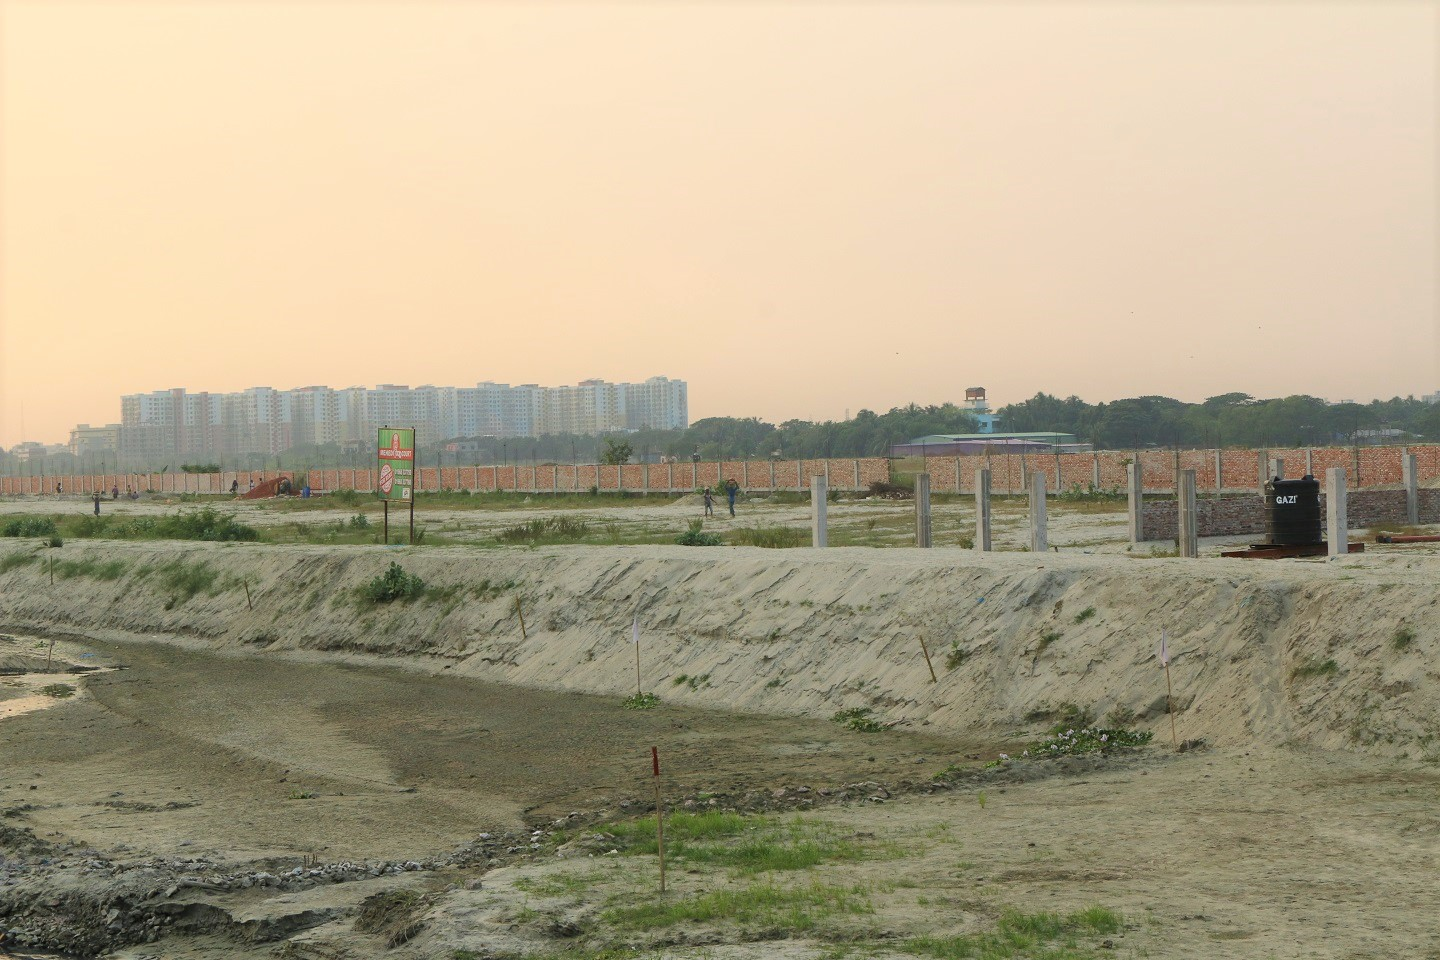 Dhaka is expanding towards the eastern side, where usable developers and utilize the under-developed lands